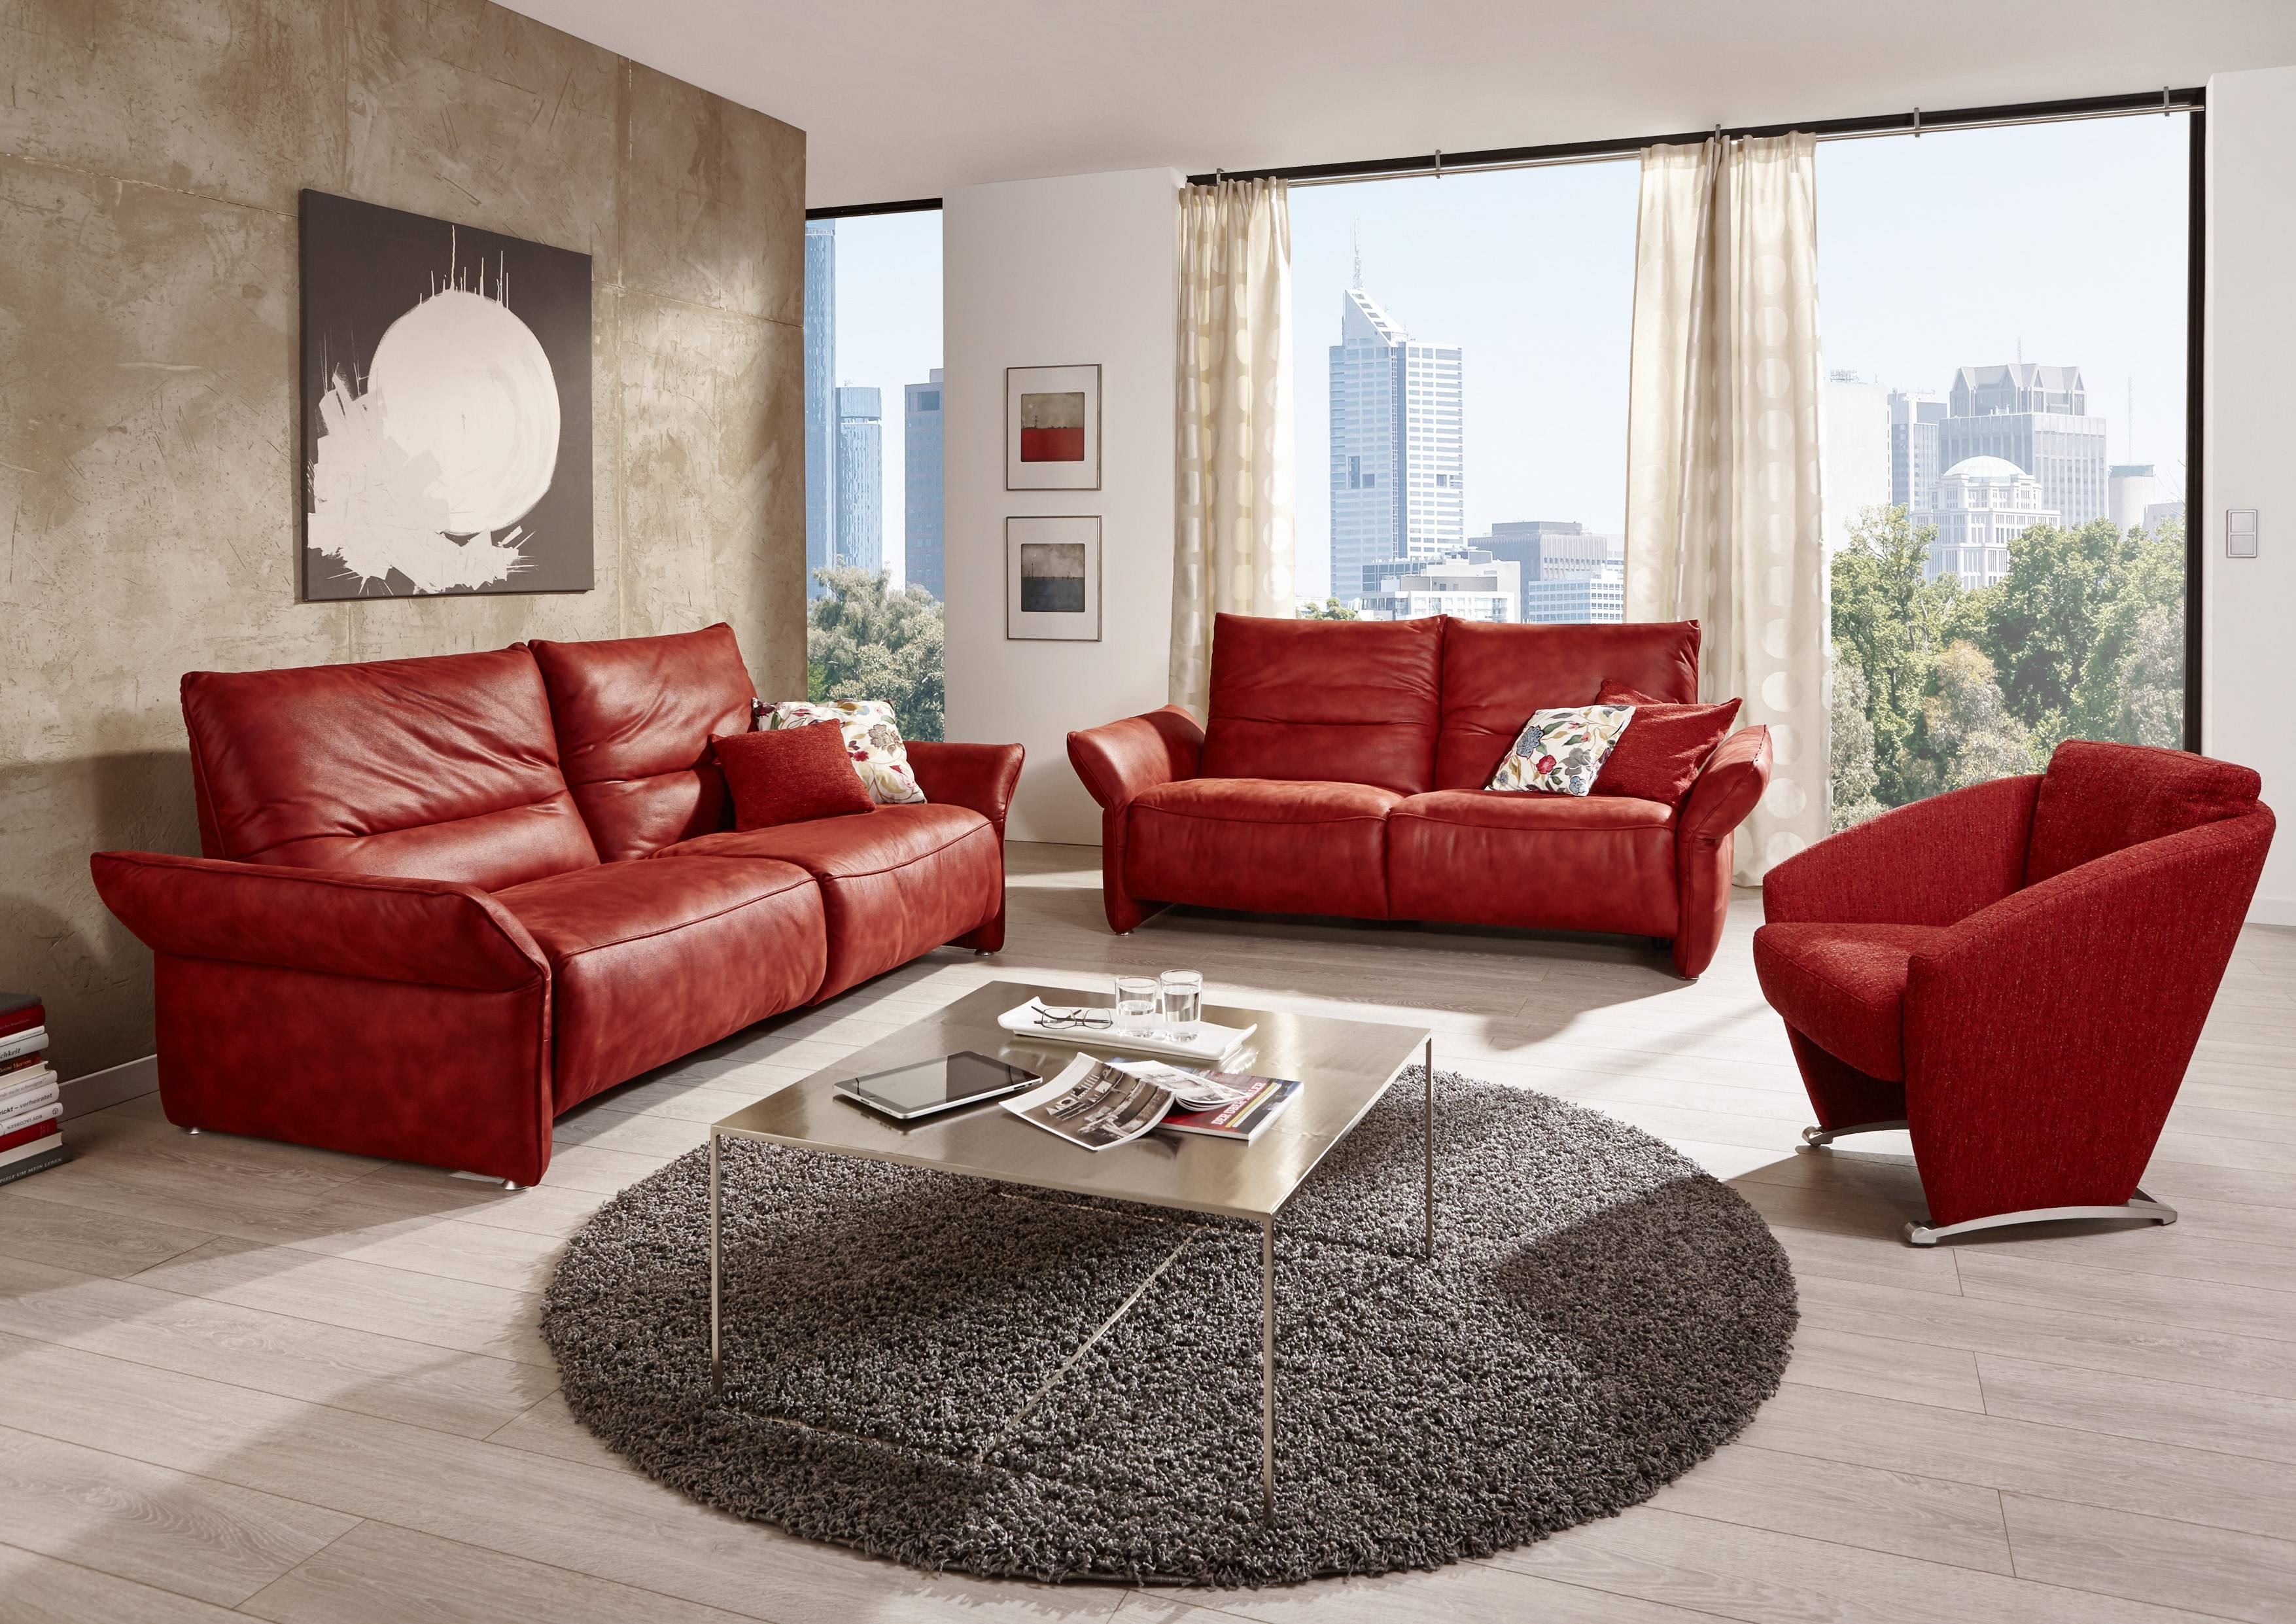 Living Room Red Leather Furniture 33415 Waco Texas Sets | Navpa2016 intended for Red Round Coffee Tables (Image 14 of 30)